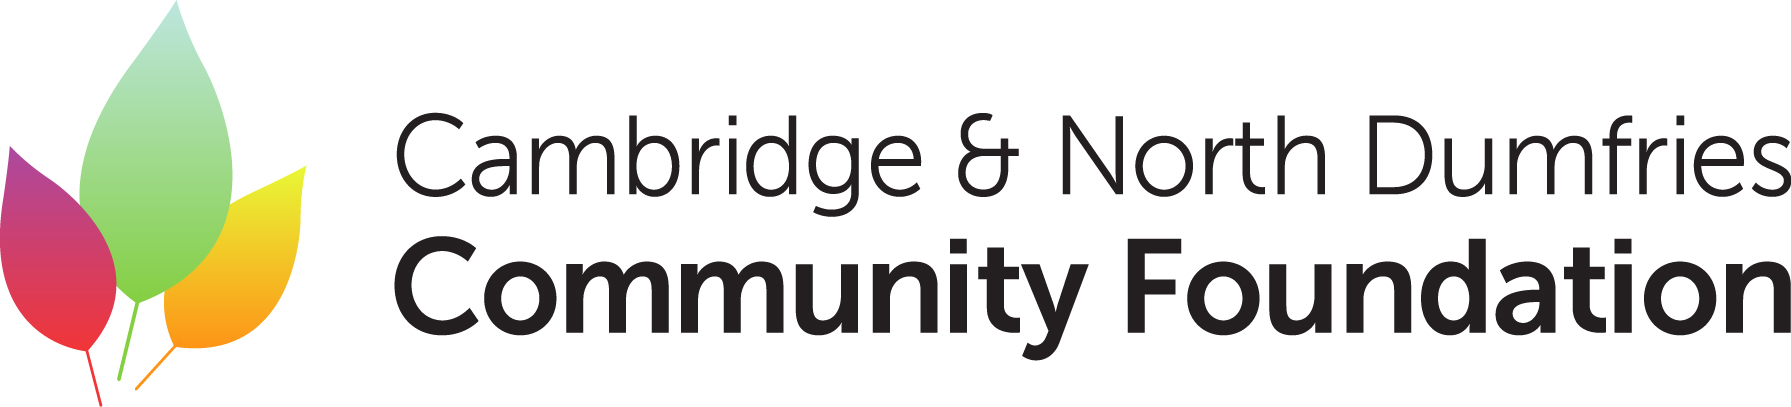 Cambridge North Dumfries Community Foundation logo